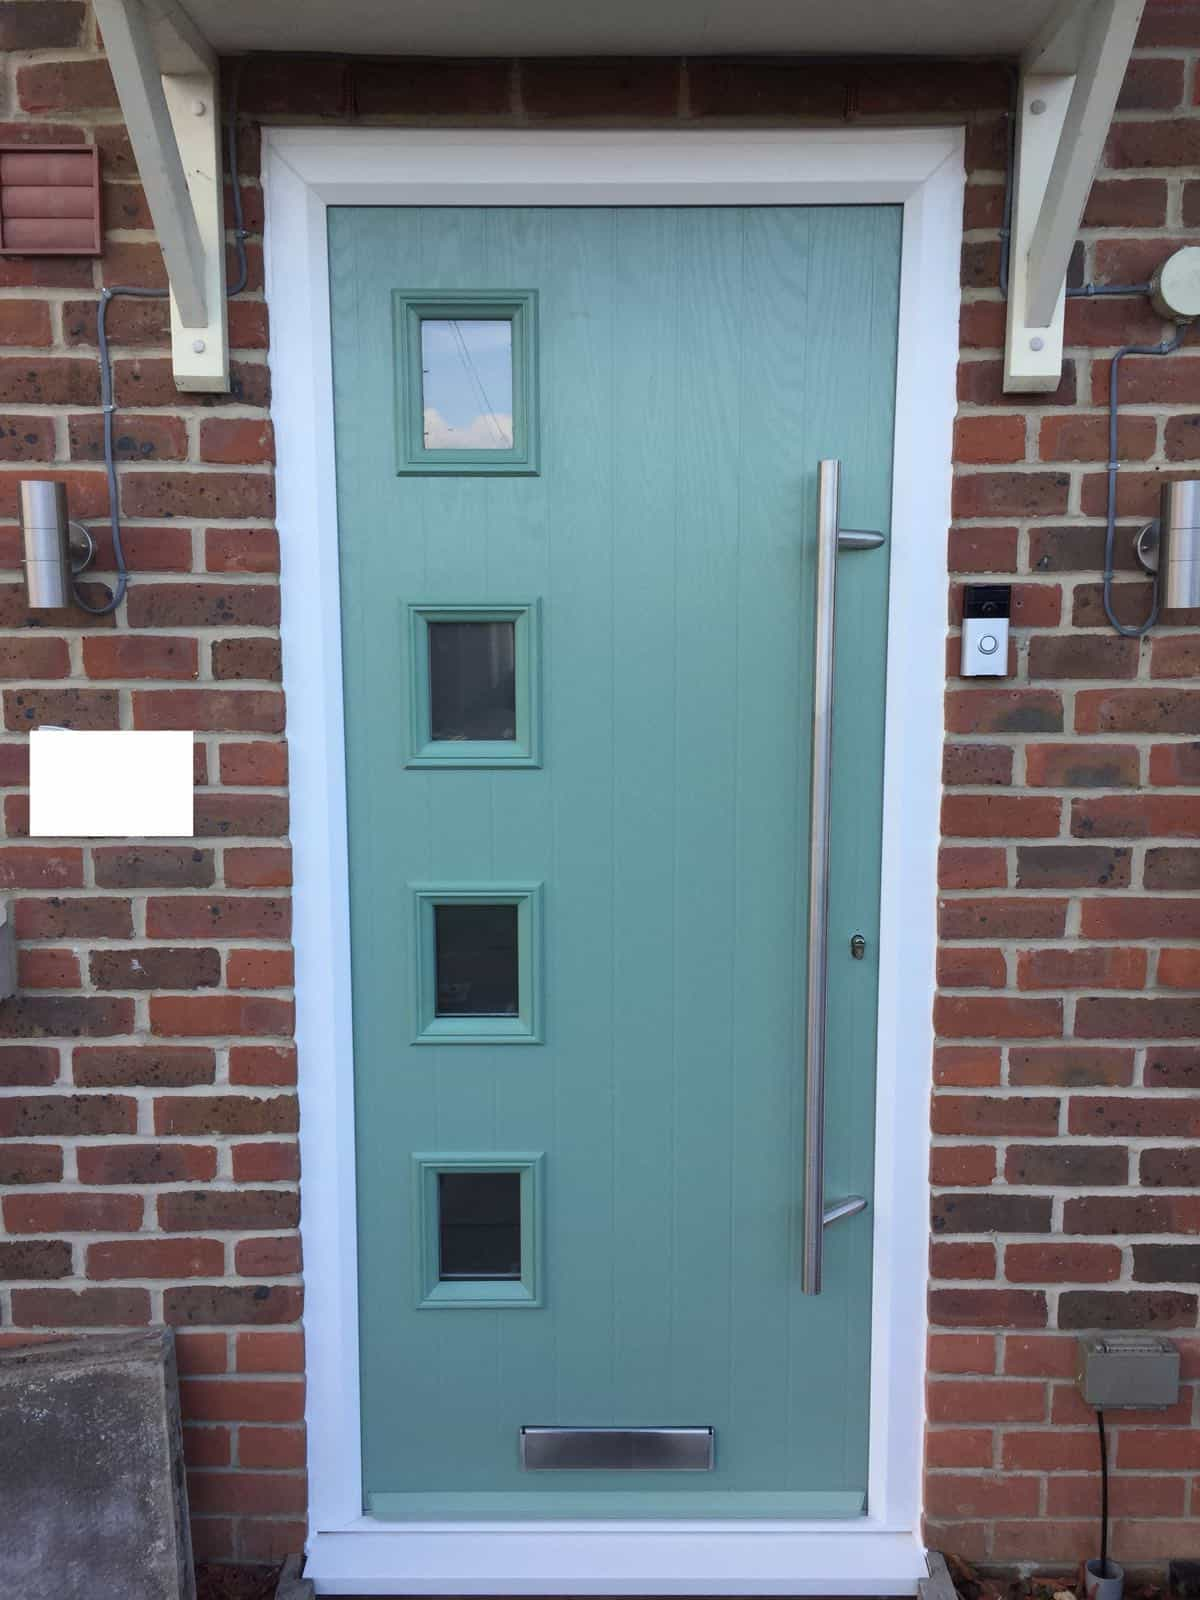 Chartwell Green 4 square composite door